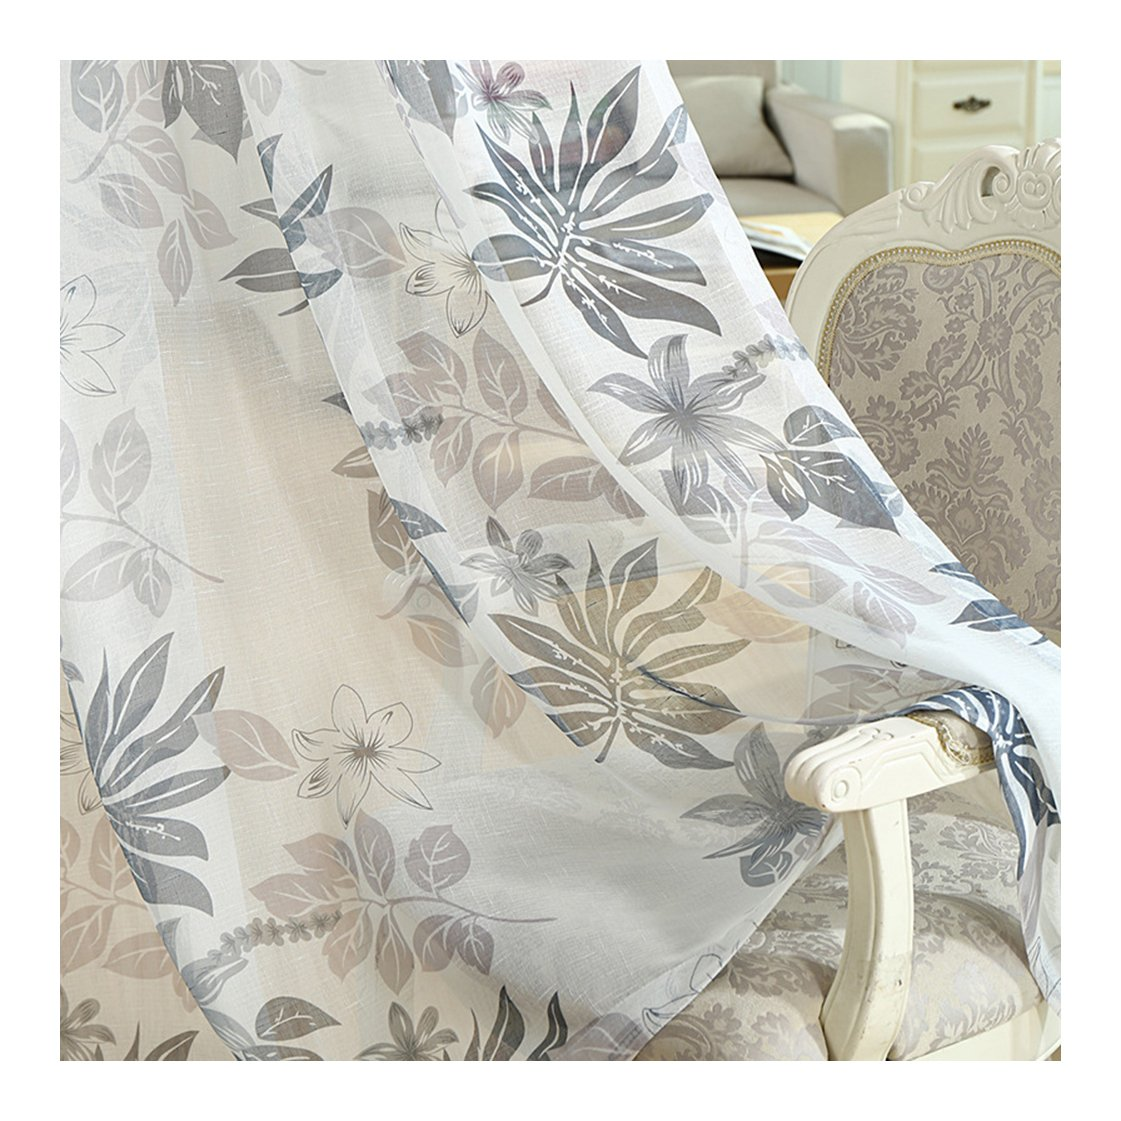 Aside Bside Plantain Leaf Printed Rod Pockets Voile Panels Home Treatment Rural Style Sheer Curtains For Houseroom Child Room and Kitchen (1 Panel, W 52 x L 63 inch, White)